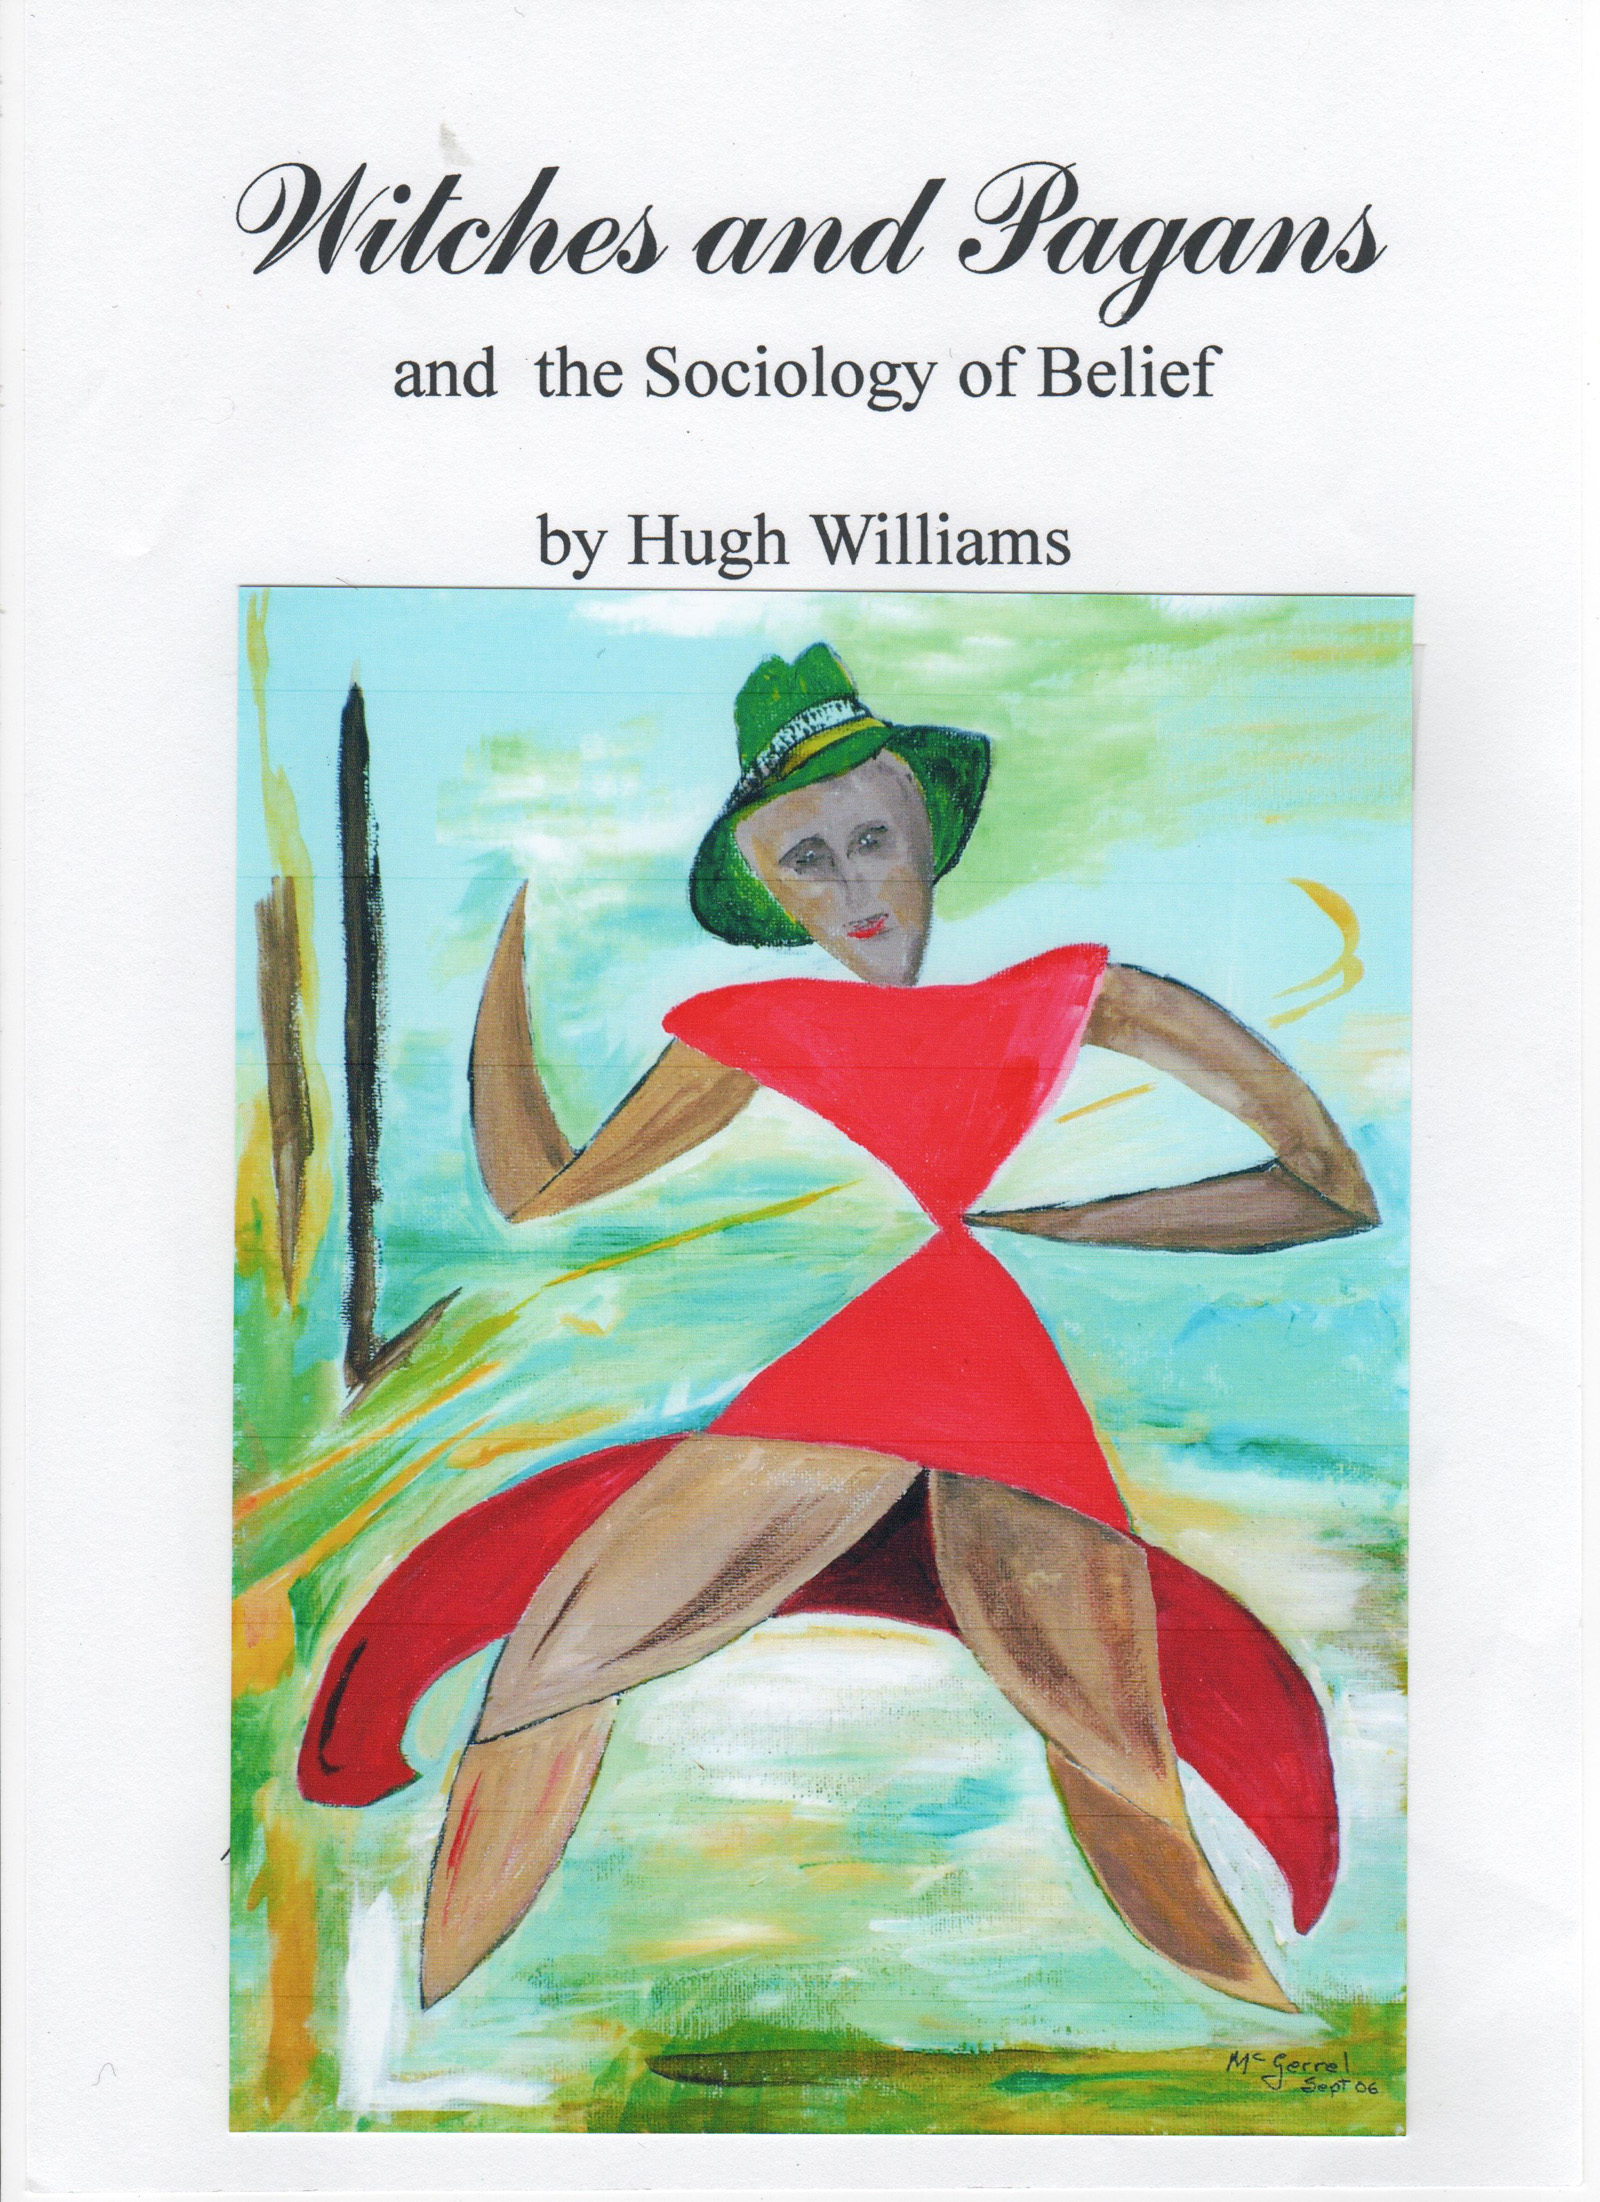 Witches and Pagans: and the Sociology of Belief